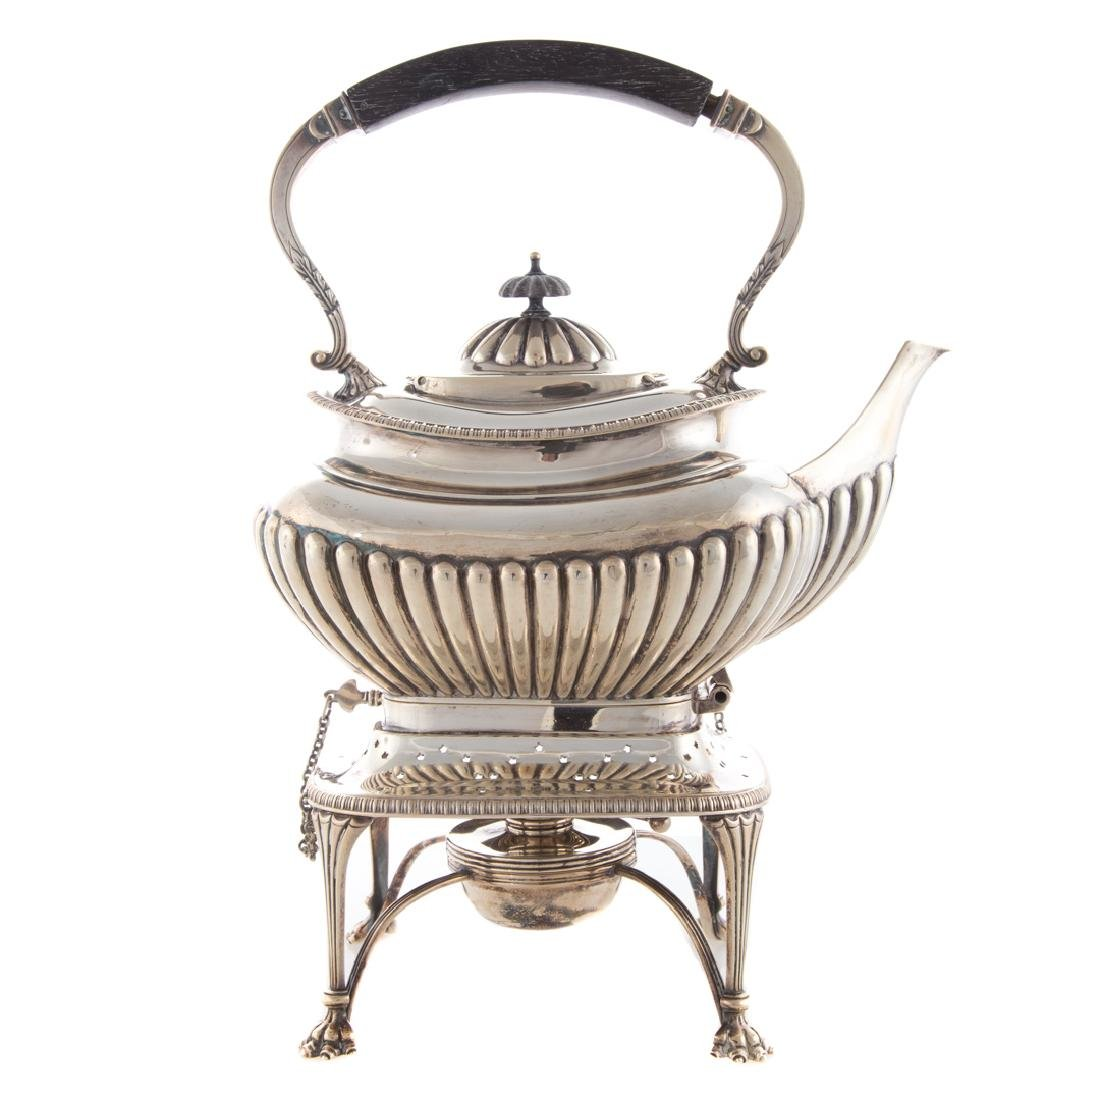 Edward VII silver hot water kettle on stand - 2